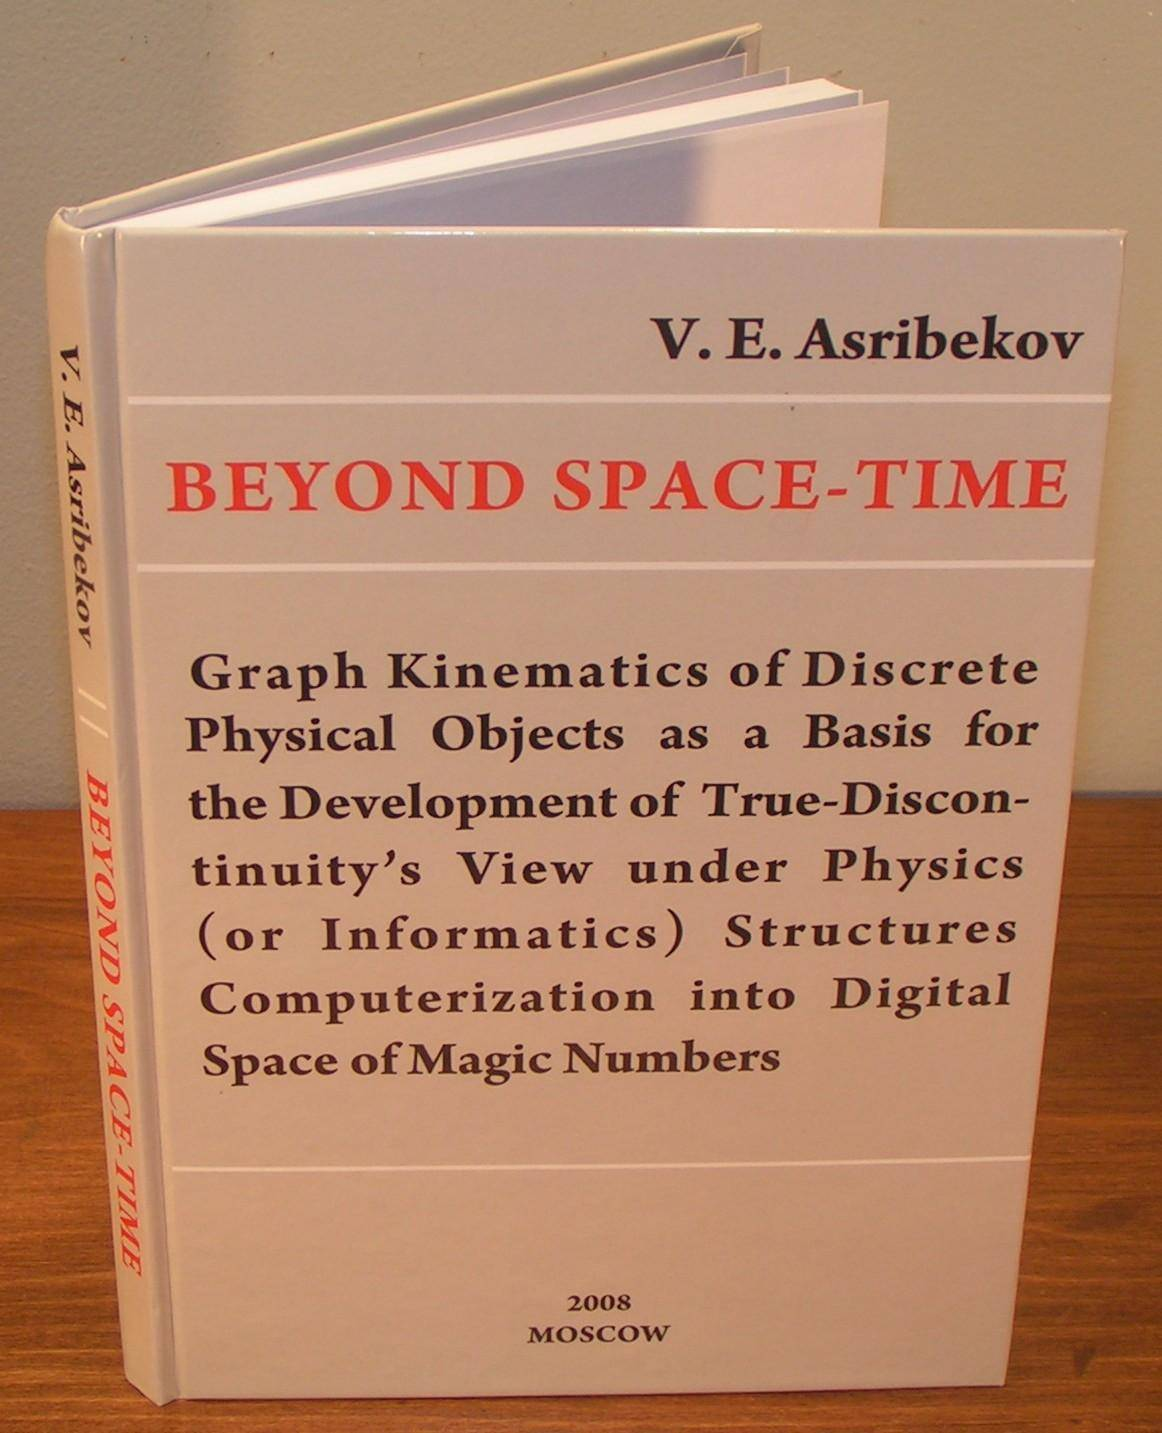 BEYOND SPACE-TIME ; graphs kinetics of discrete physical objects as a basis for the development of true-discontinuity's under physics (or informatics